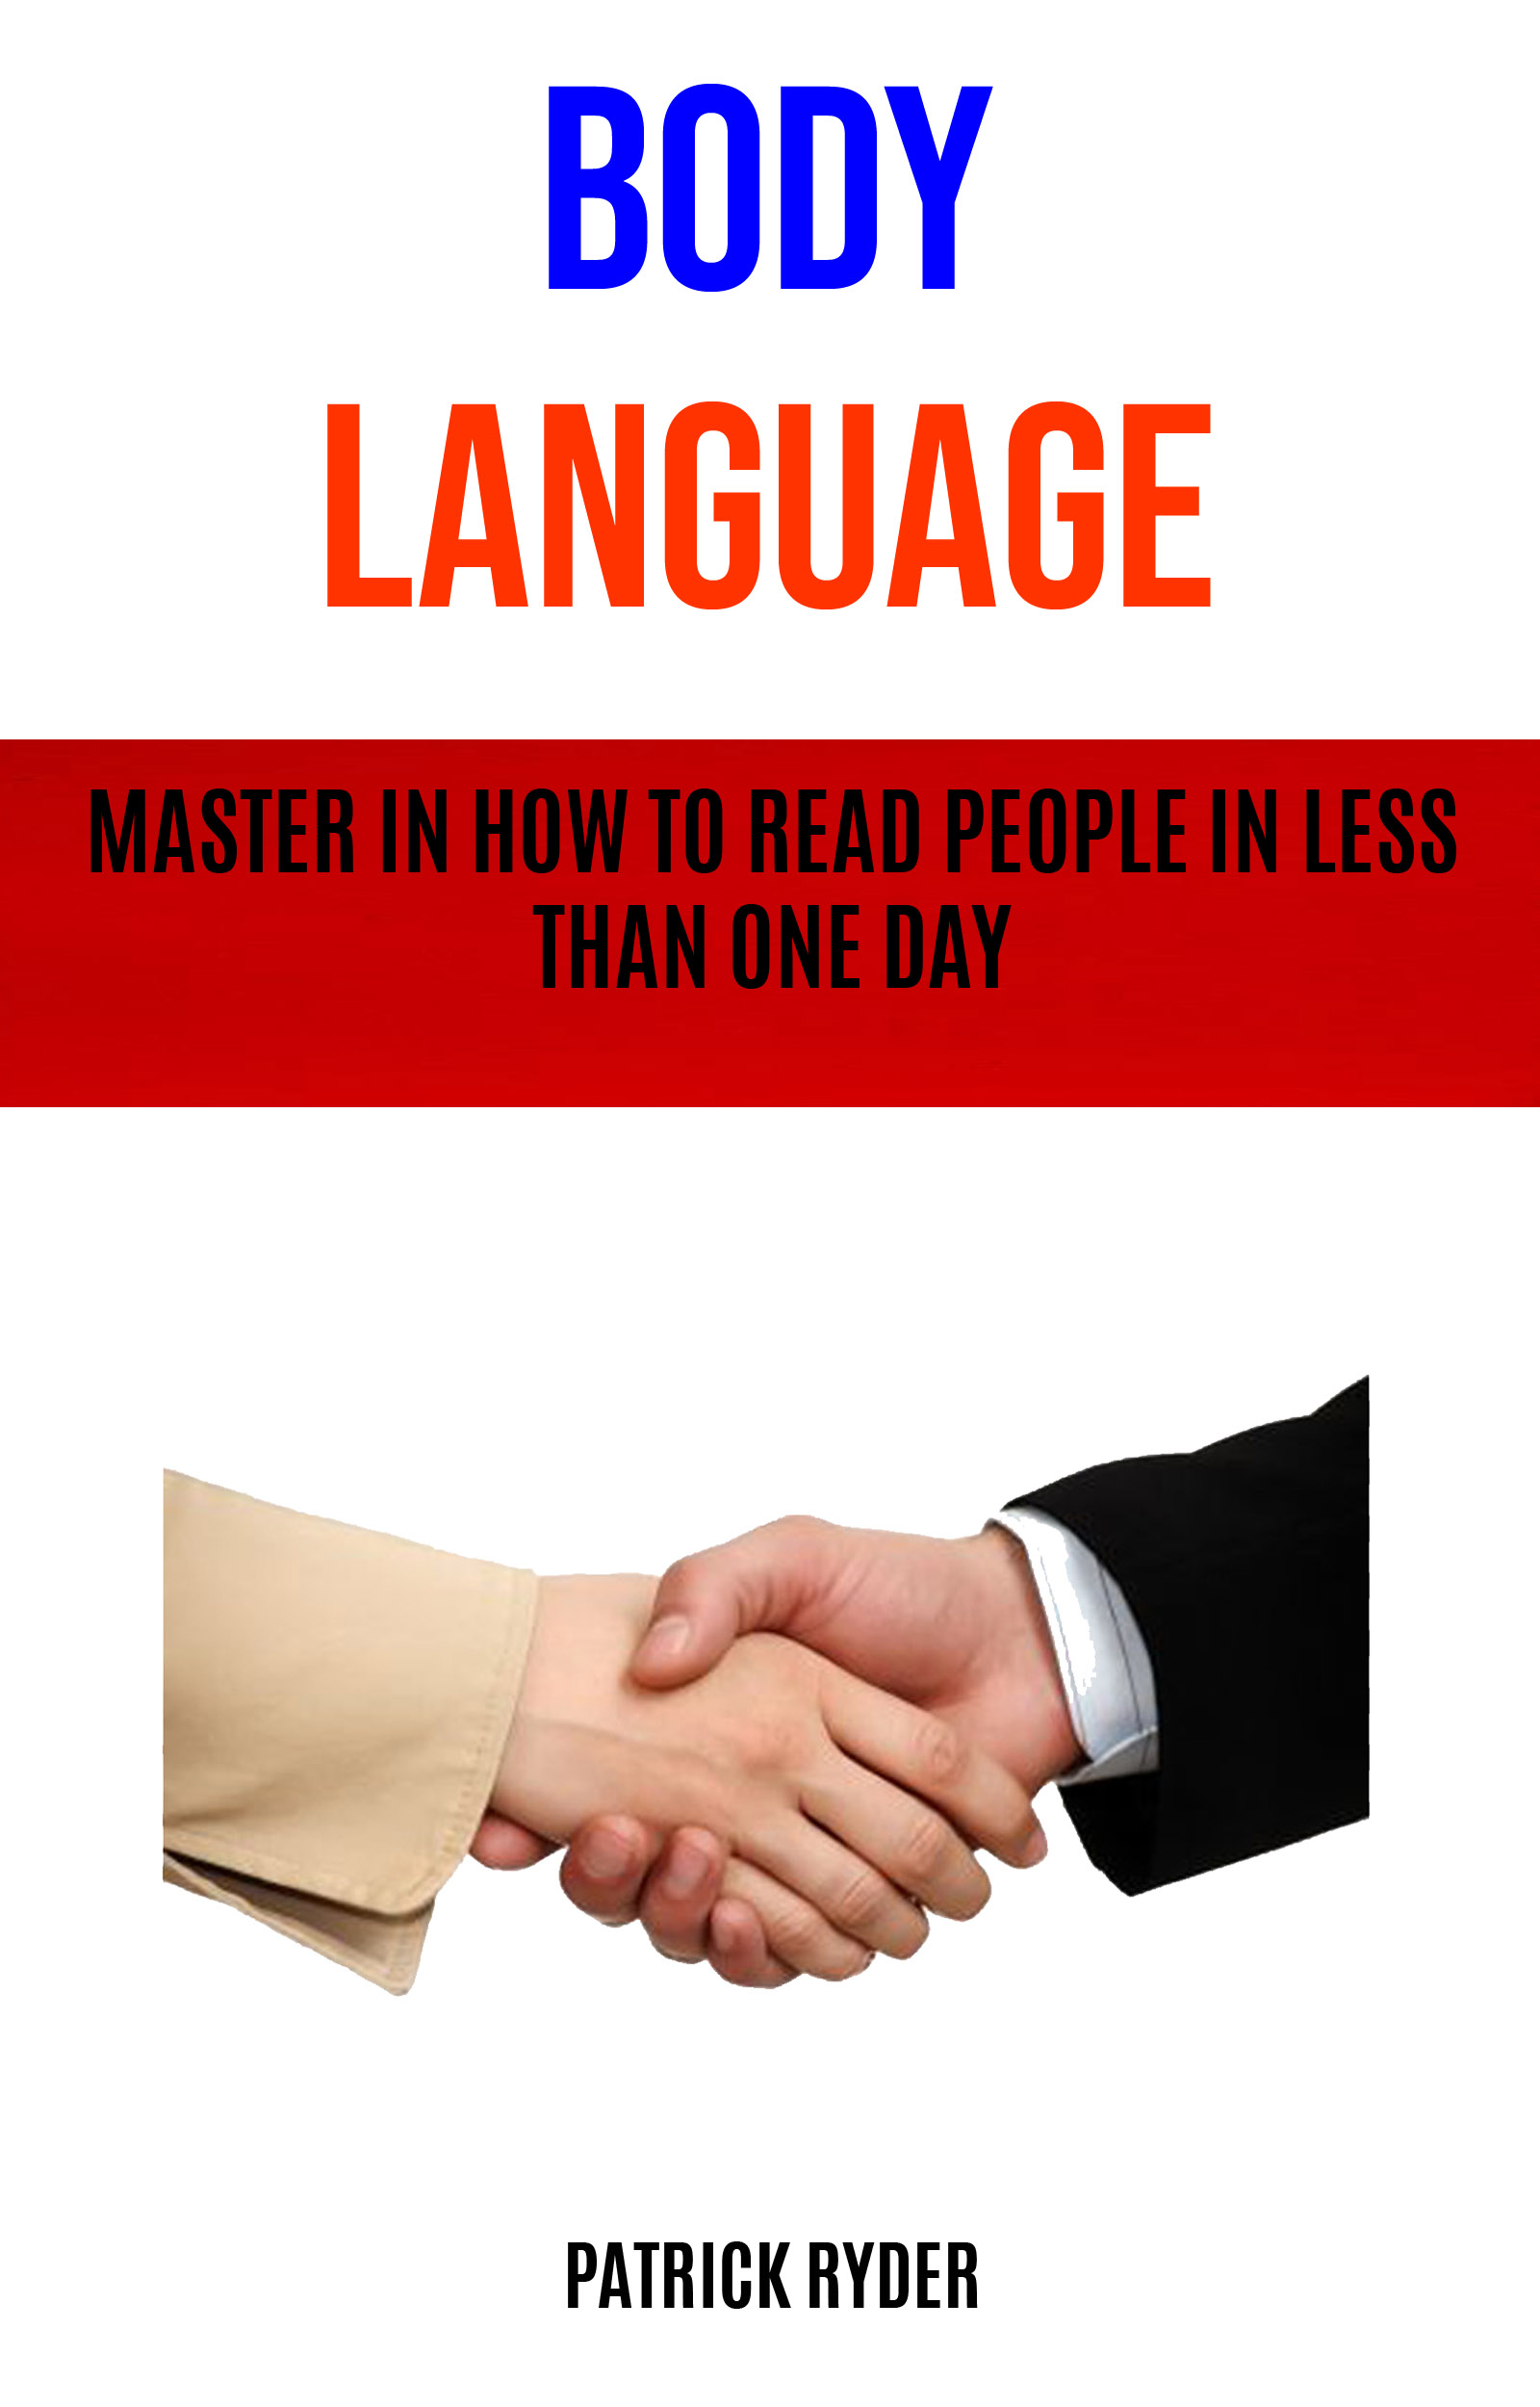 Body language: master in how to read people in less than one day